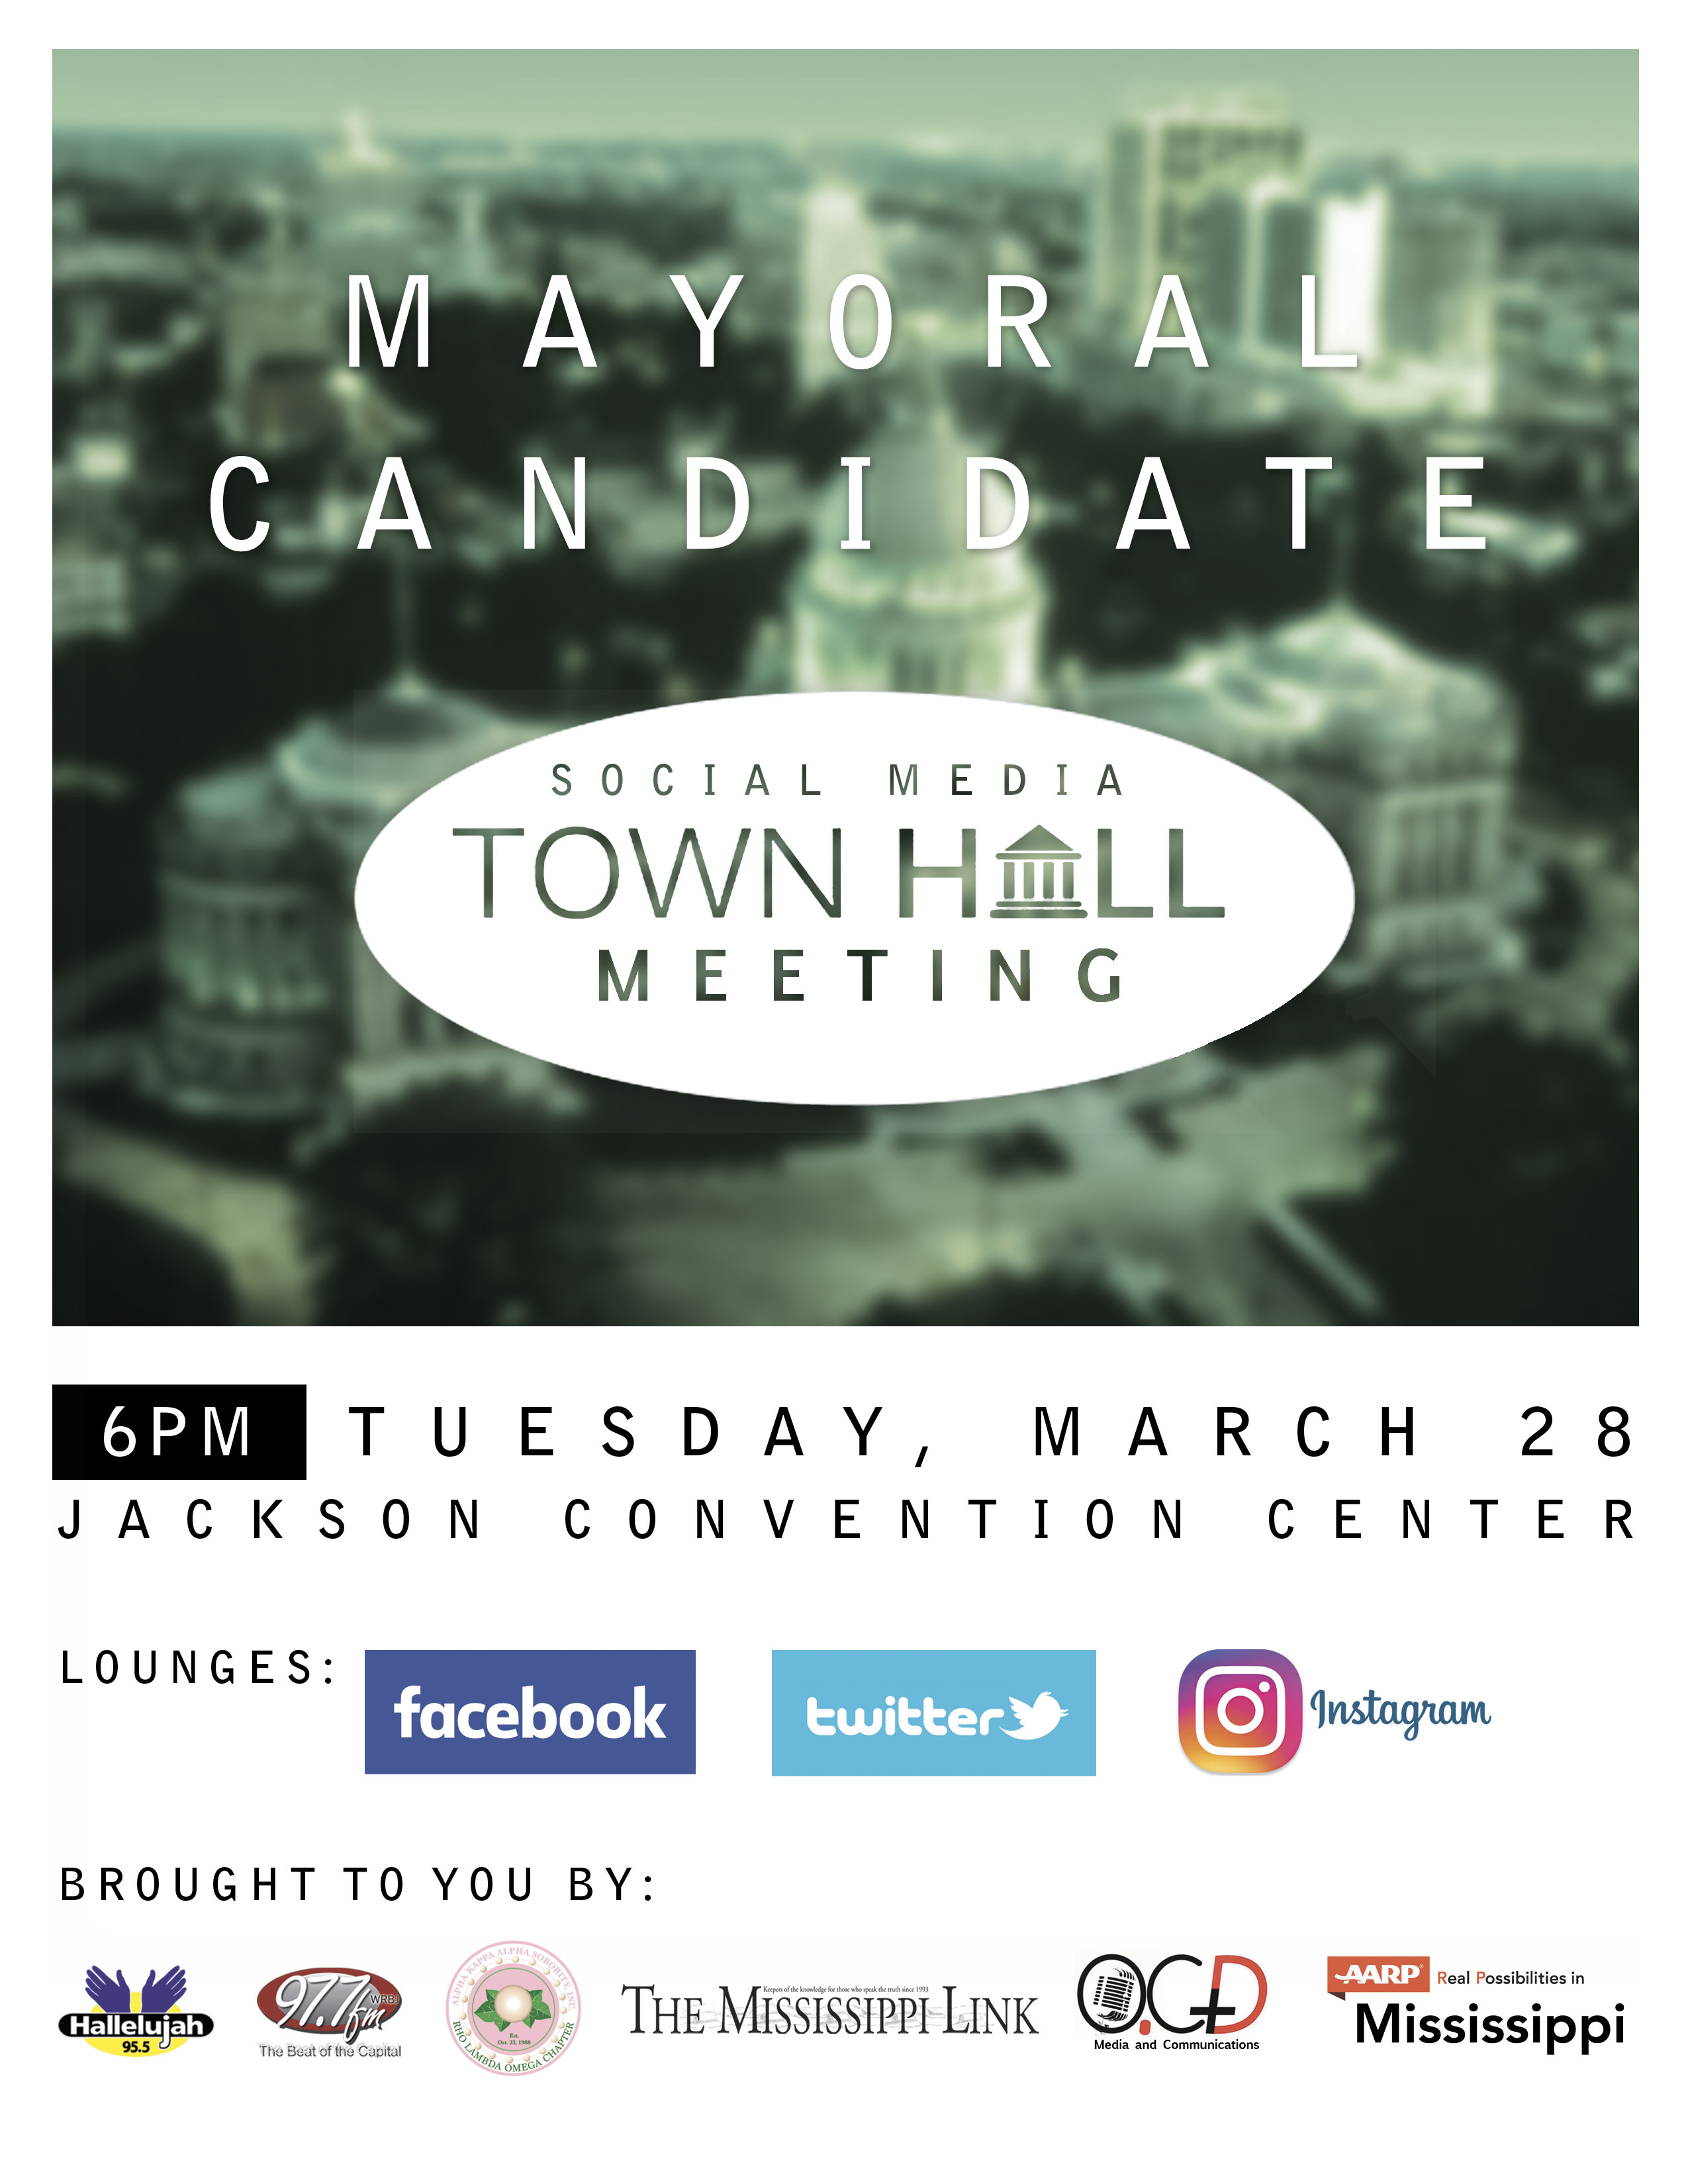 The Mississippi Link to participate in Social Media Town Hall Forum